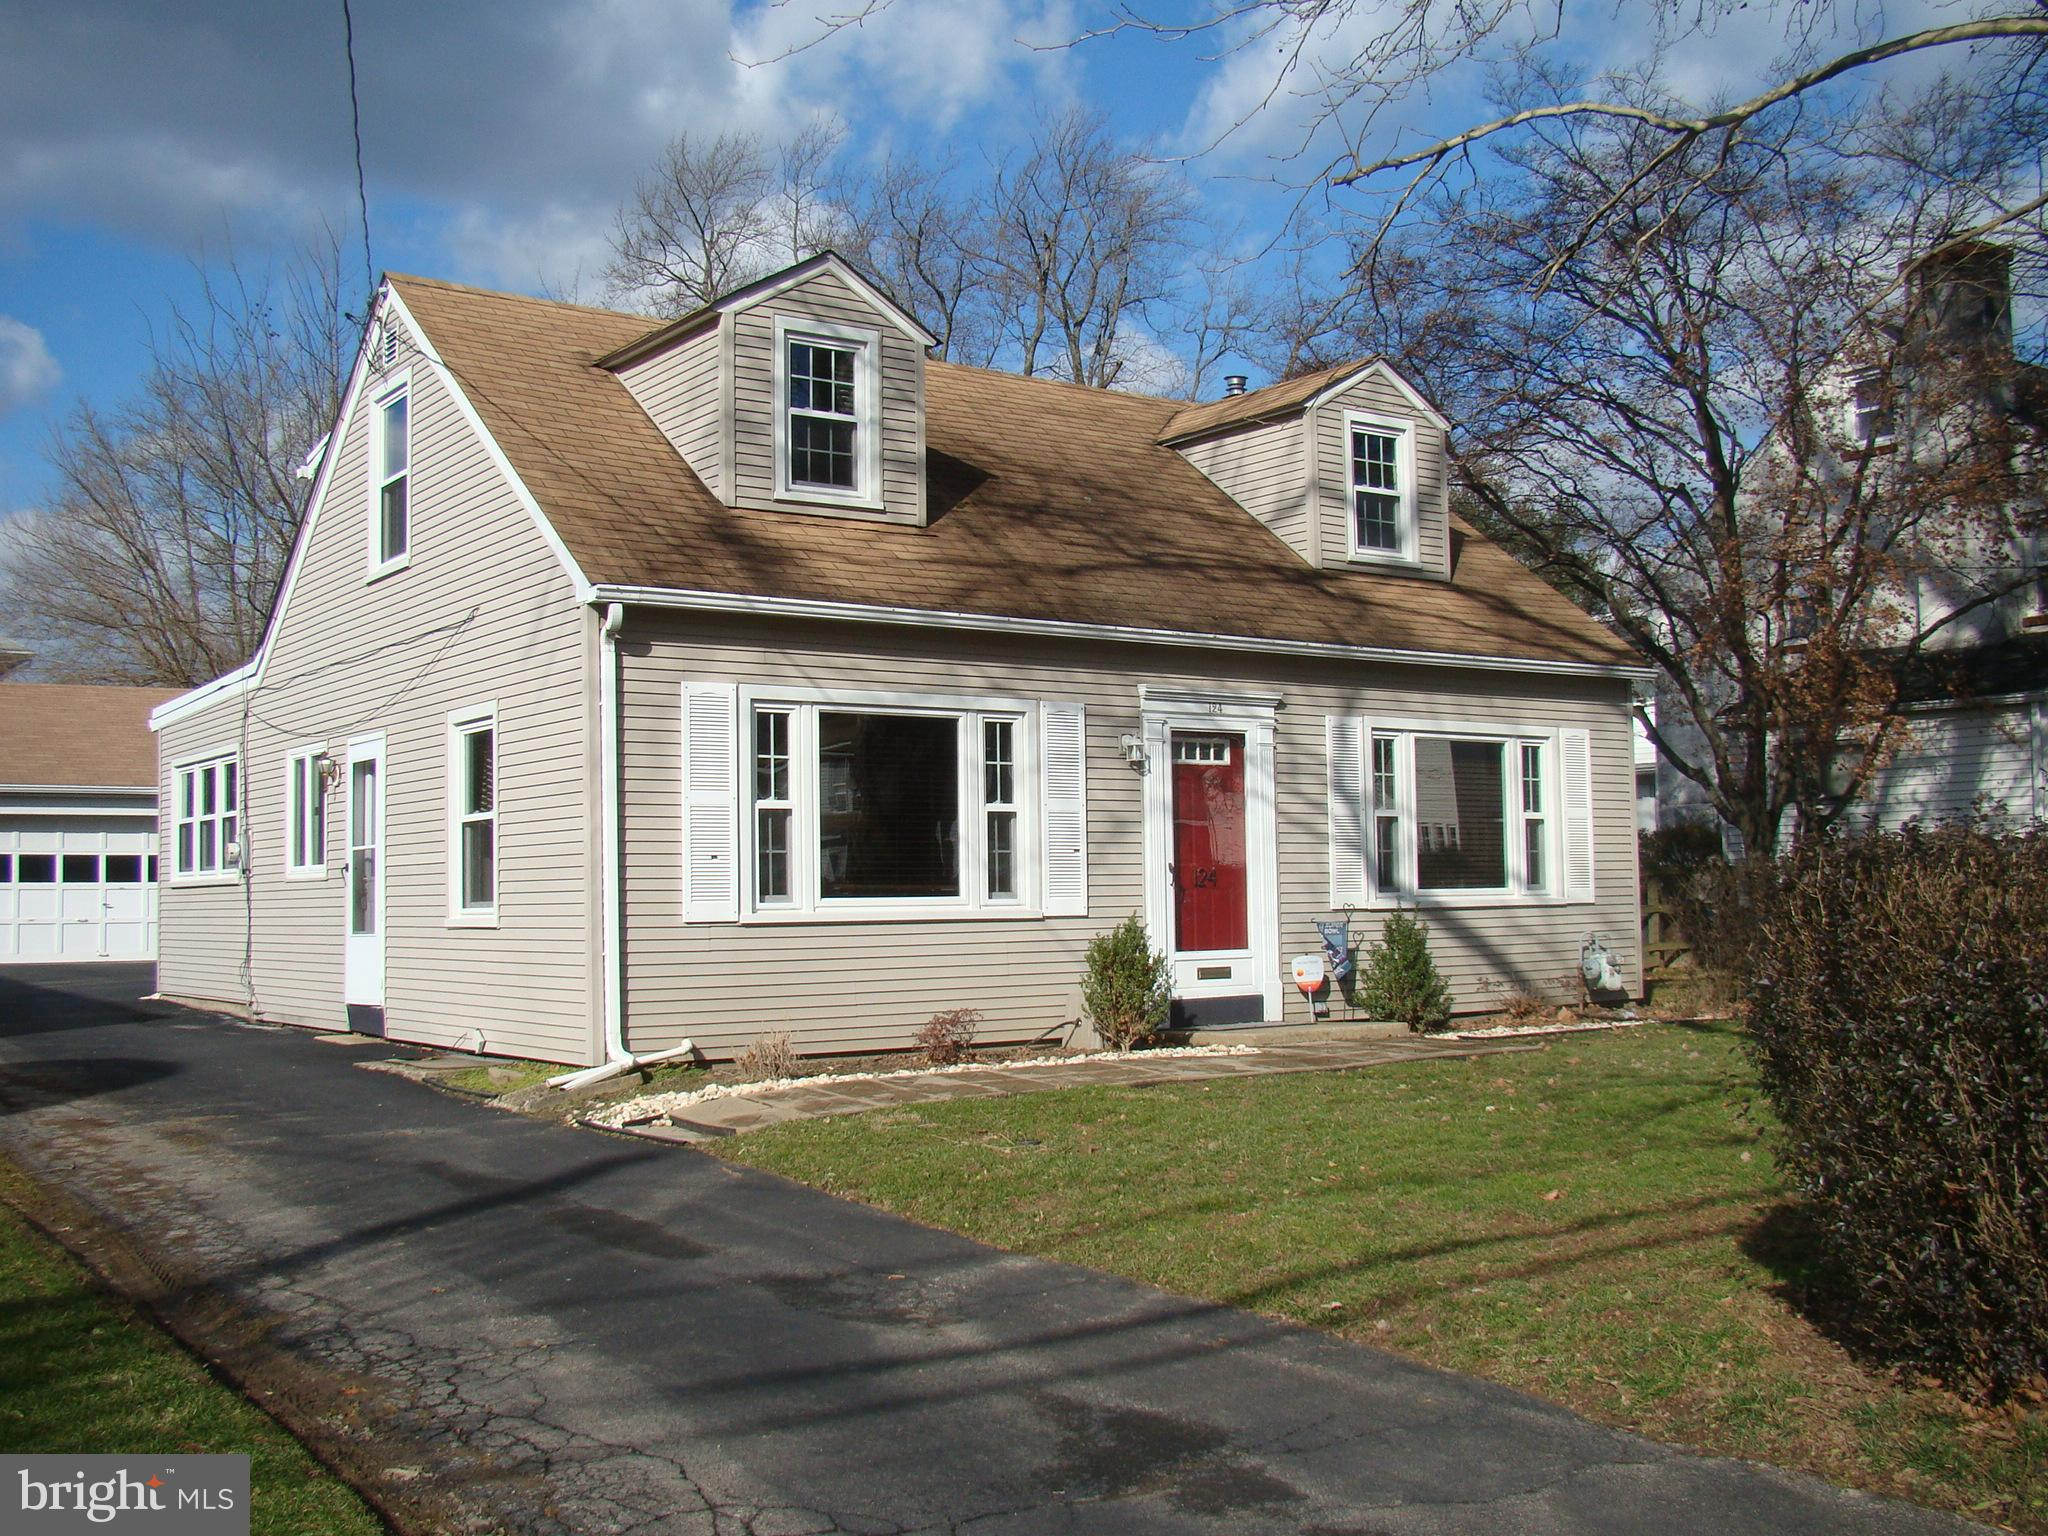 124 CAMERON ROAD, WILLOW GROVE, PA 19090